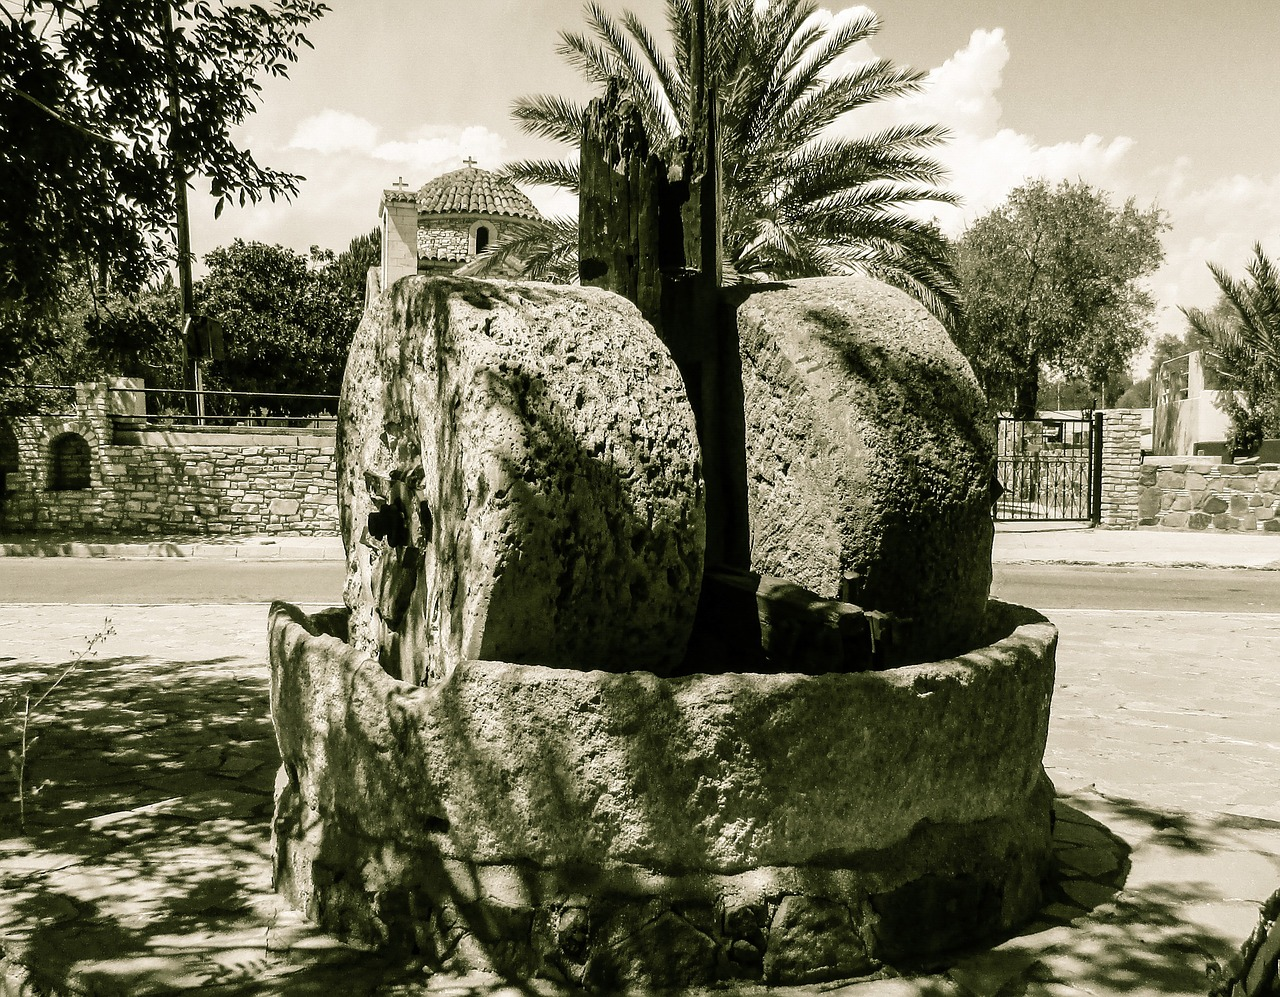 oil press,stones,oil,mill,millstone,agriculture,village,traditional,cyprus,sha,rural,countryside,free pictures, free photos, free images, royalty free, free illustrations